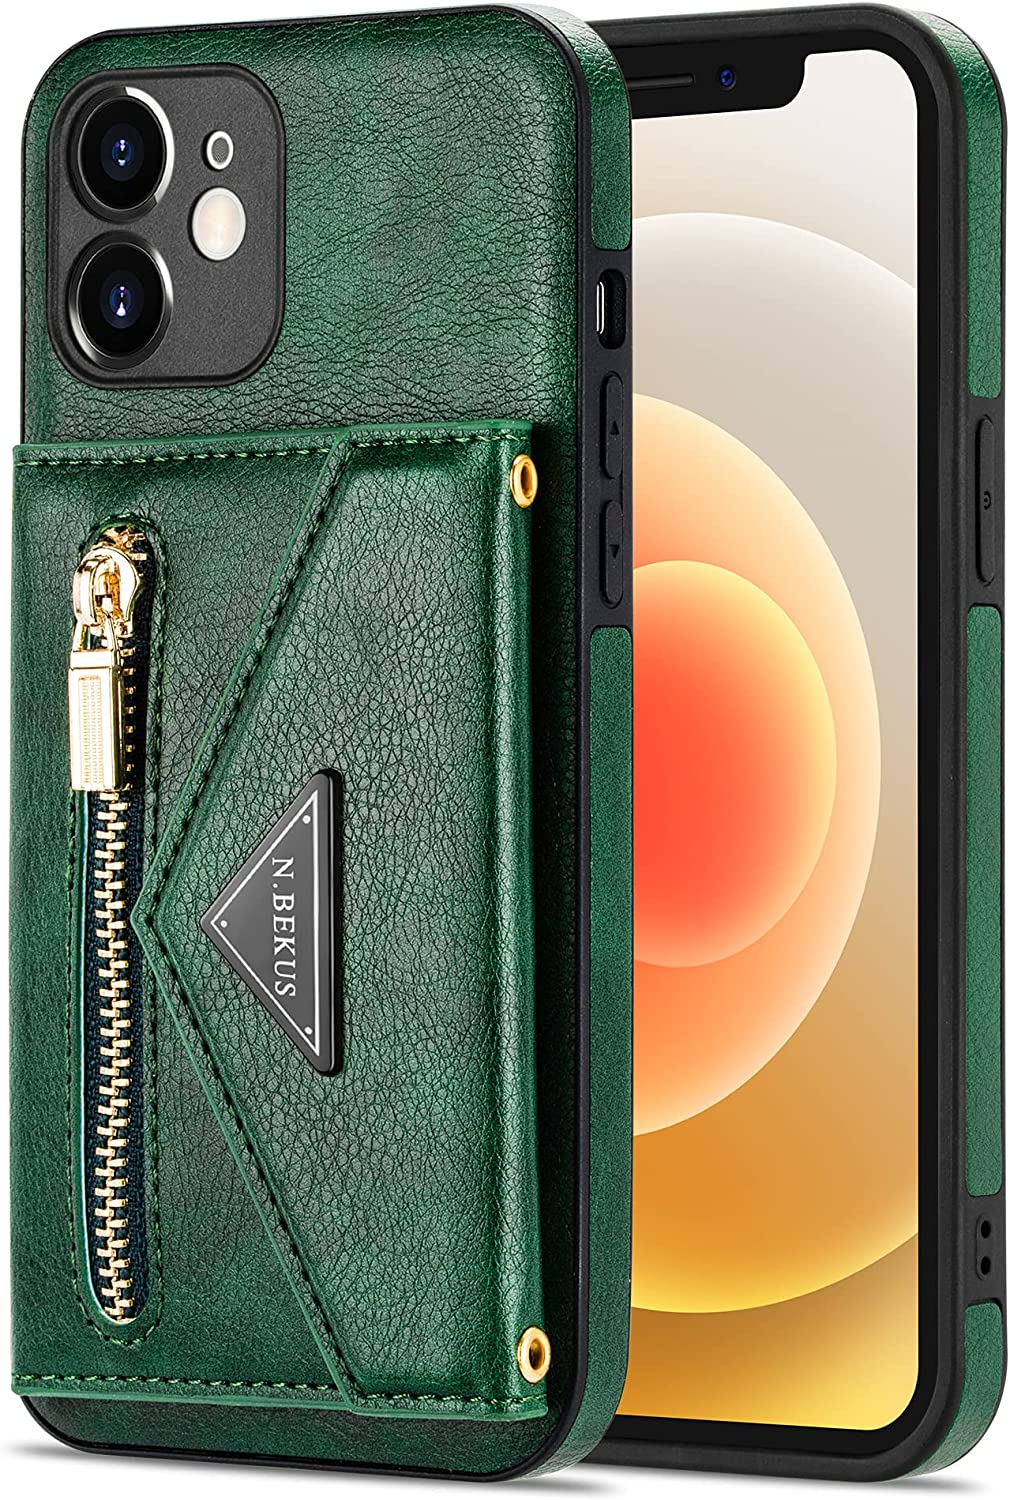 Crossbody Wallet Case for iPhone XR with Card Holder, Zipper Back Flip Card Slot Protector Shockproof Purse PU Leather Cover with Removable Cross Body Strap (Green)